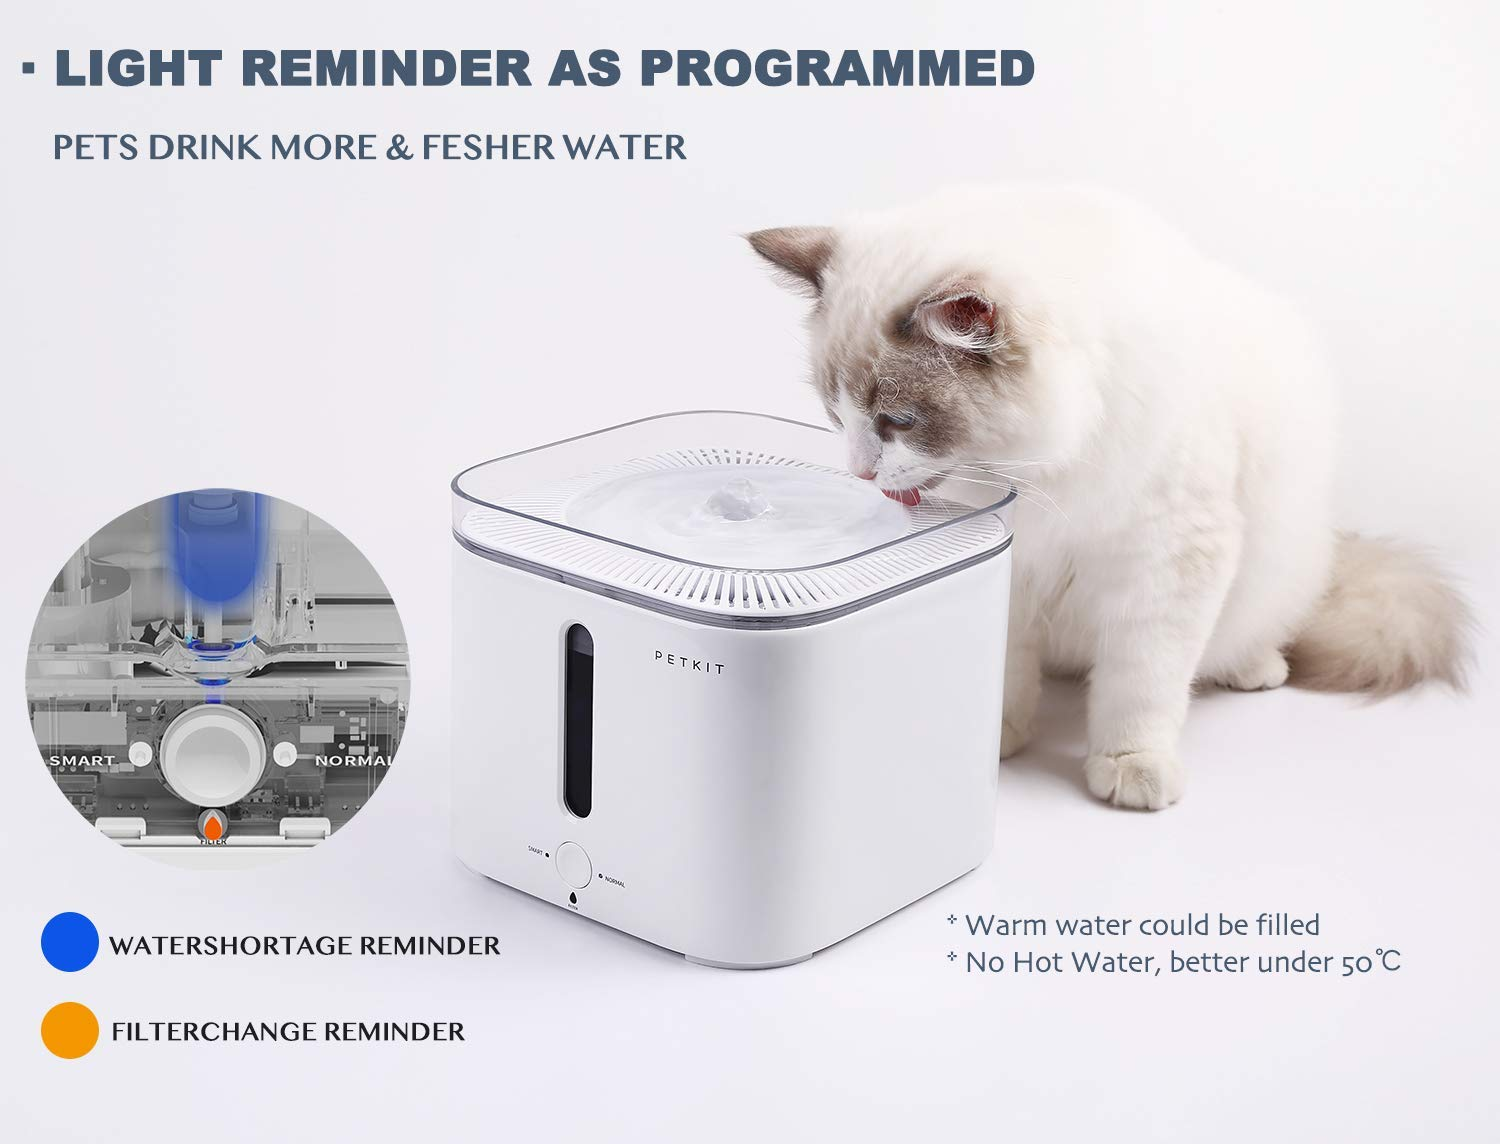 PETKIT Gen.2 Smart Drinking Pet Water Fountain with water purification and heating function